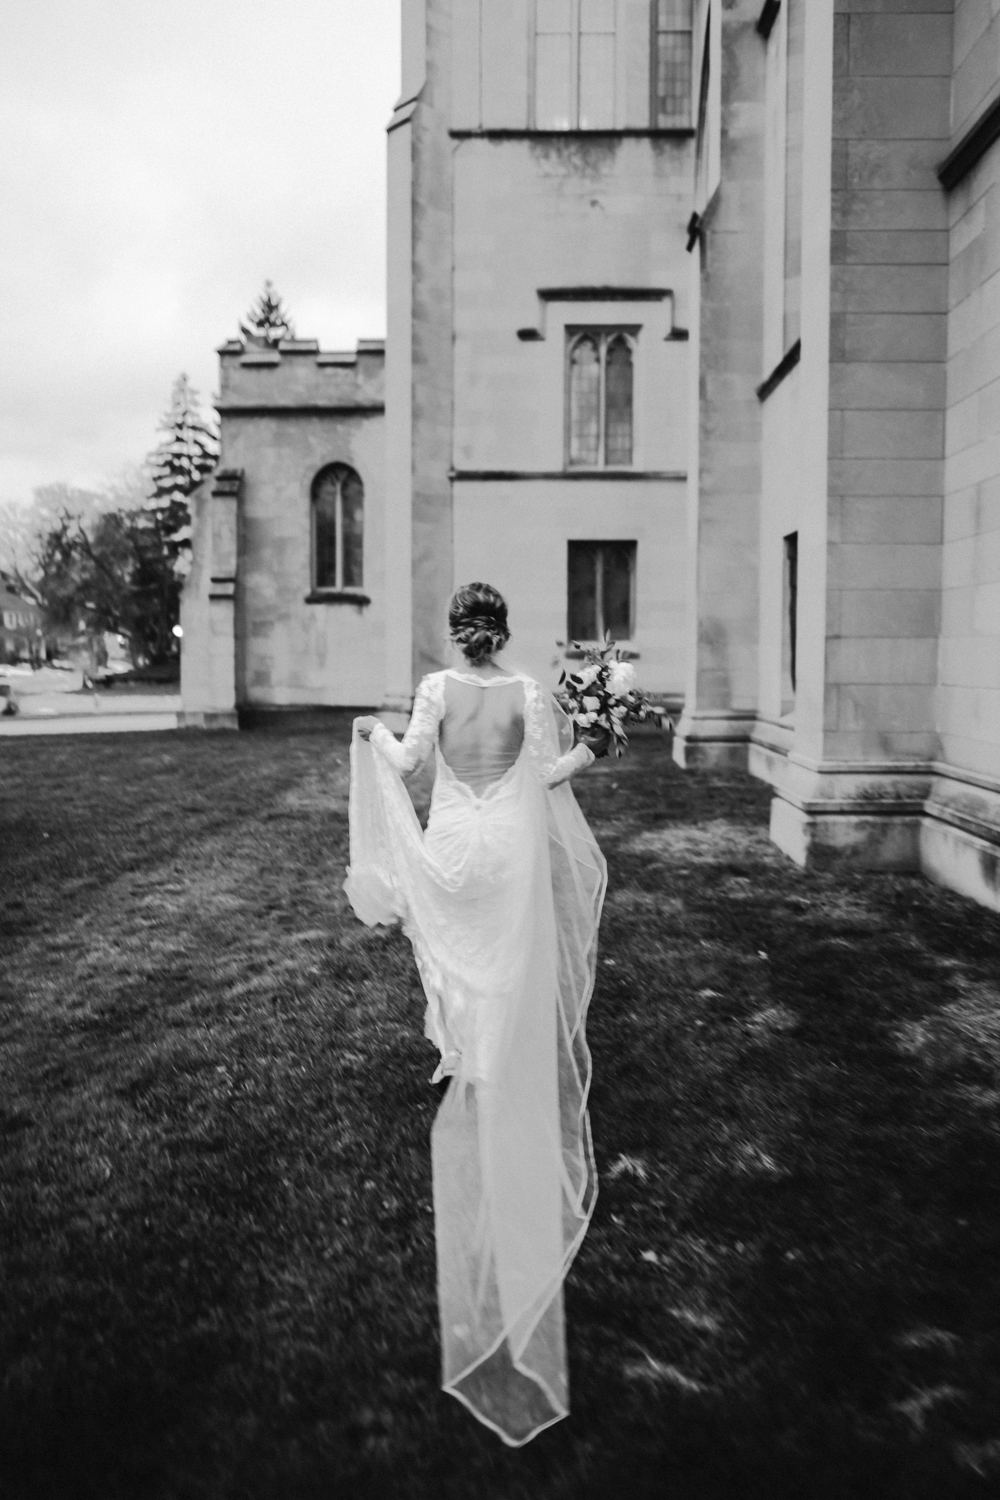 A bride with an open back wedding gown runs near a cathedral in Holland, Michigan